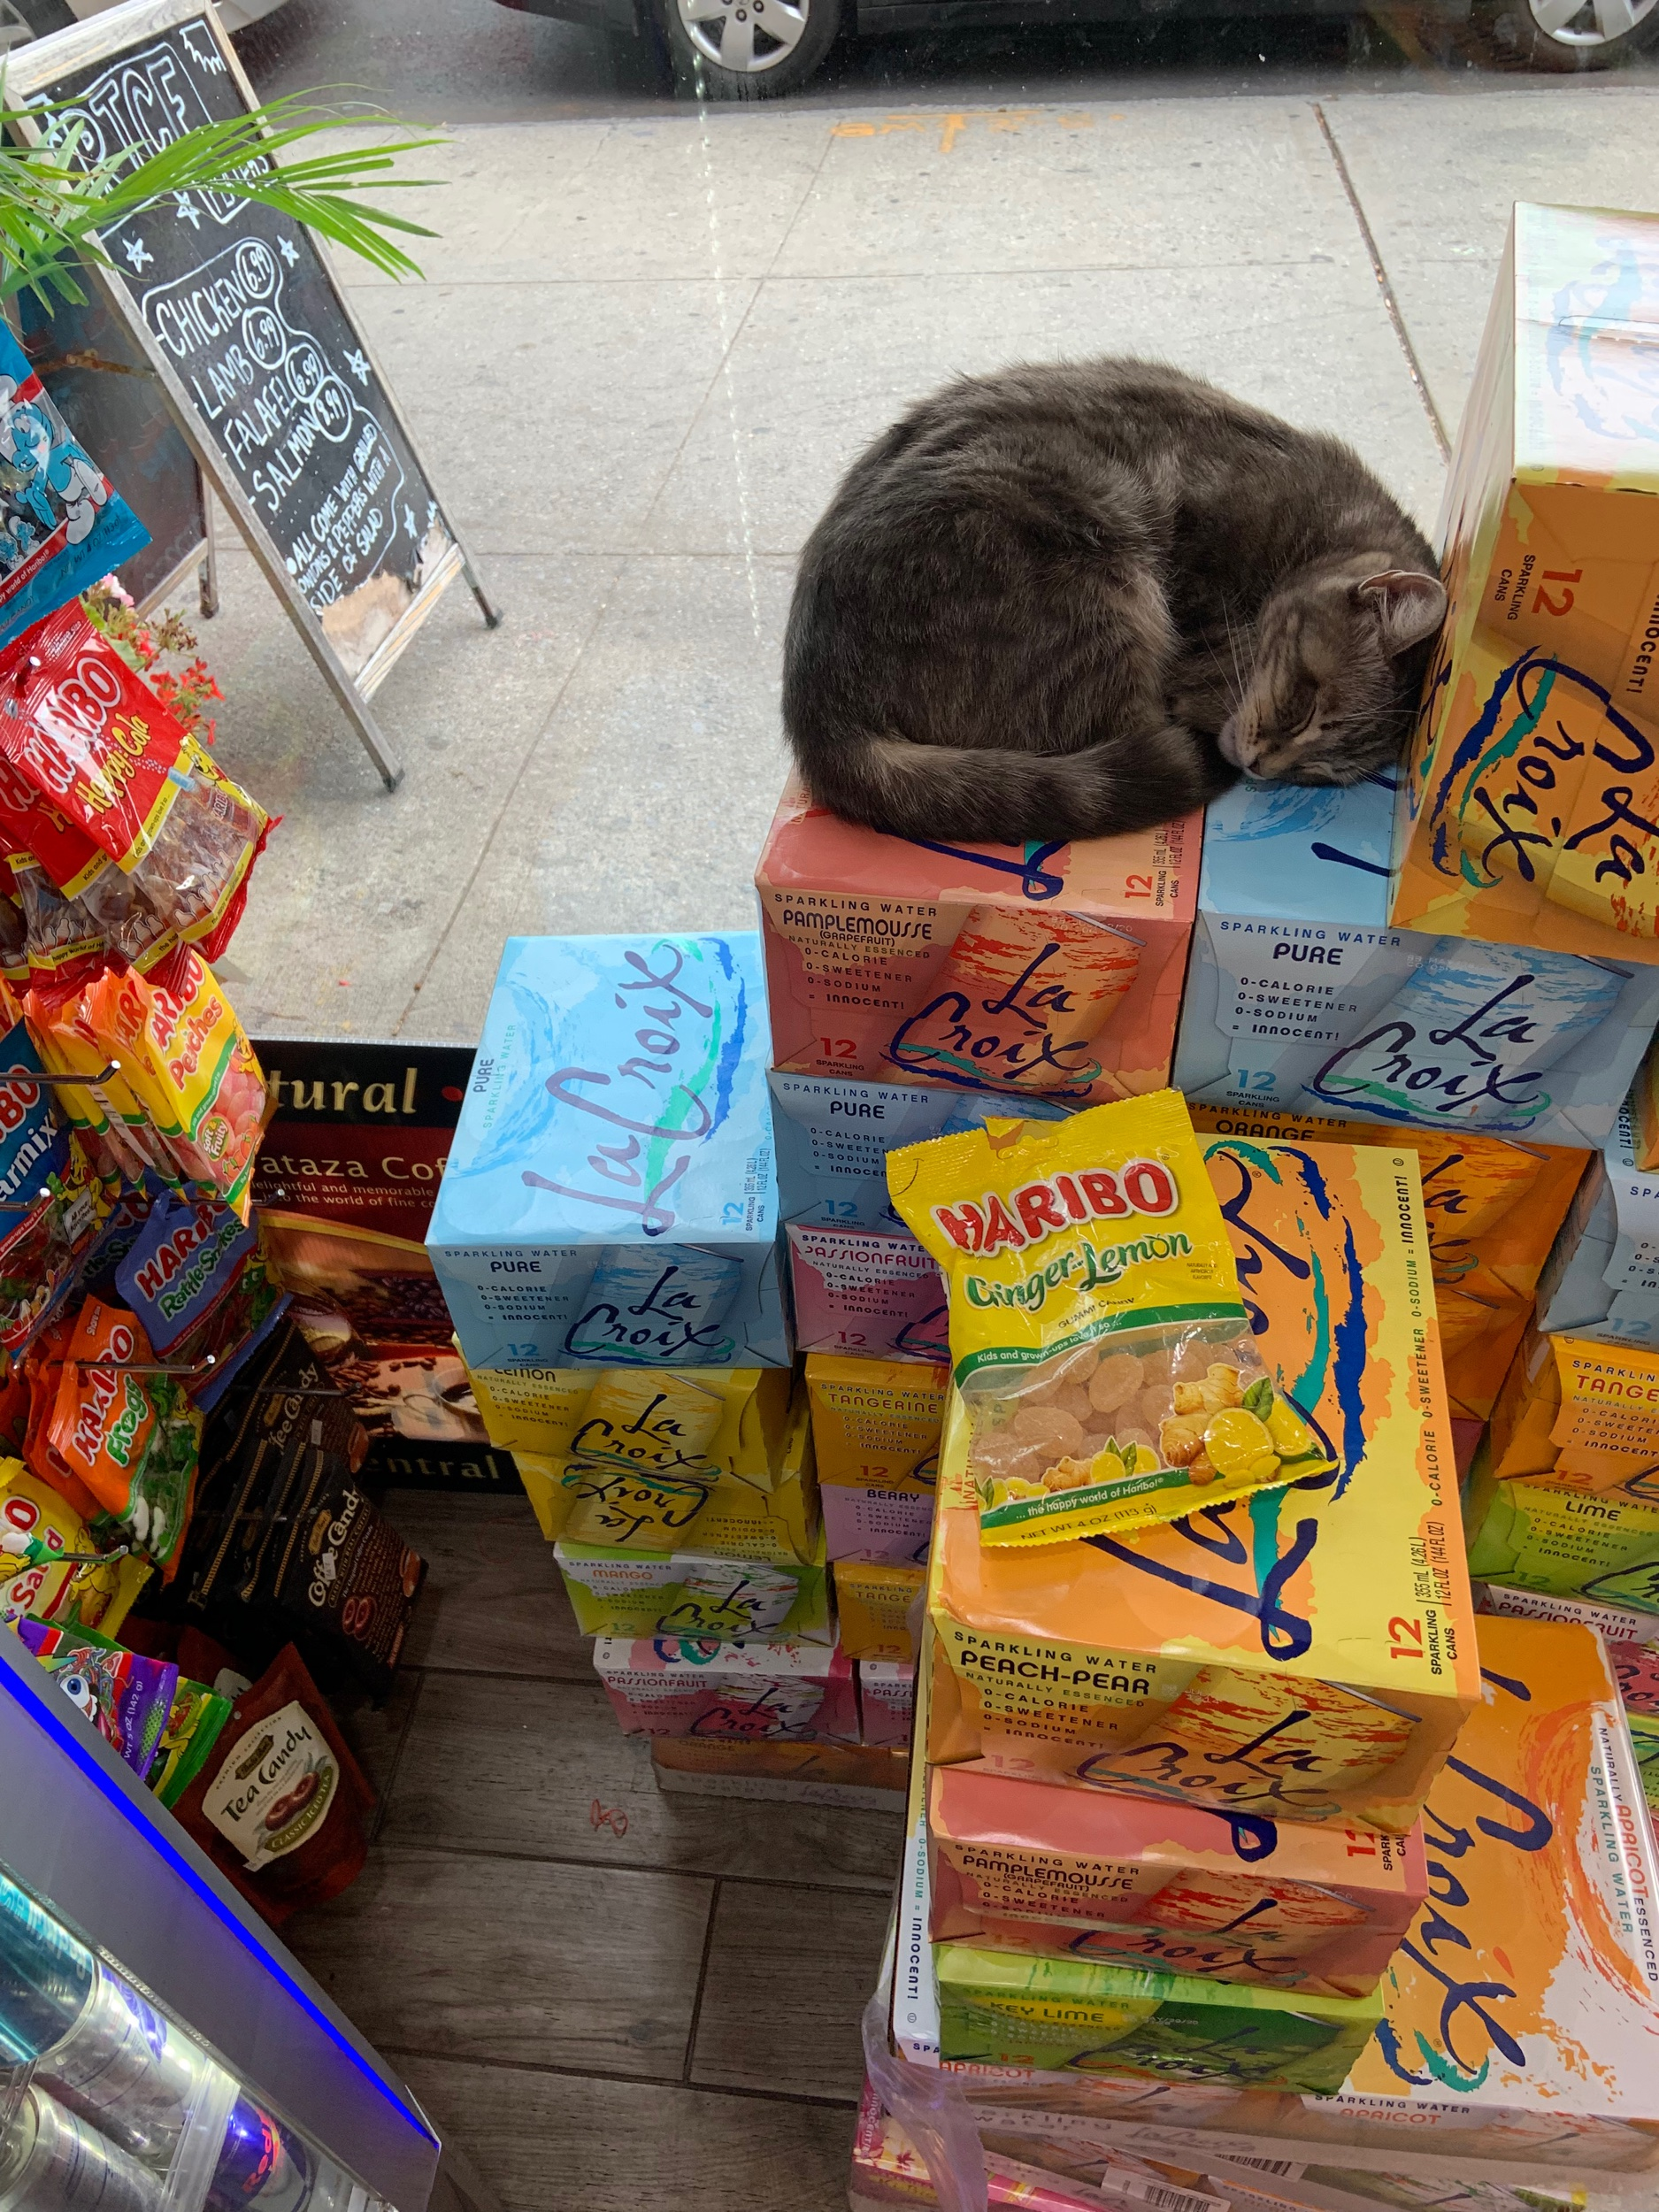 Pamplemousse the bodega cat showing us all how it's done.